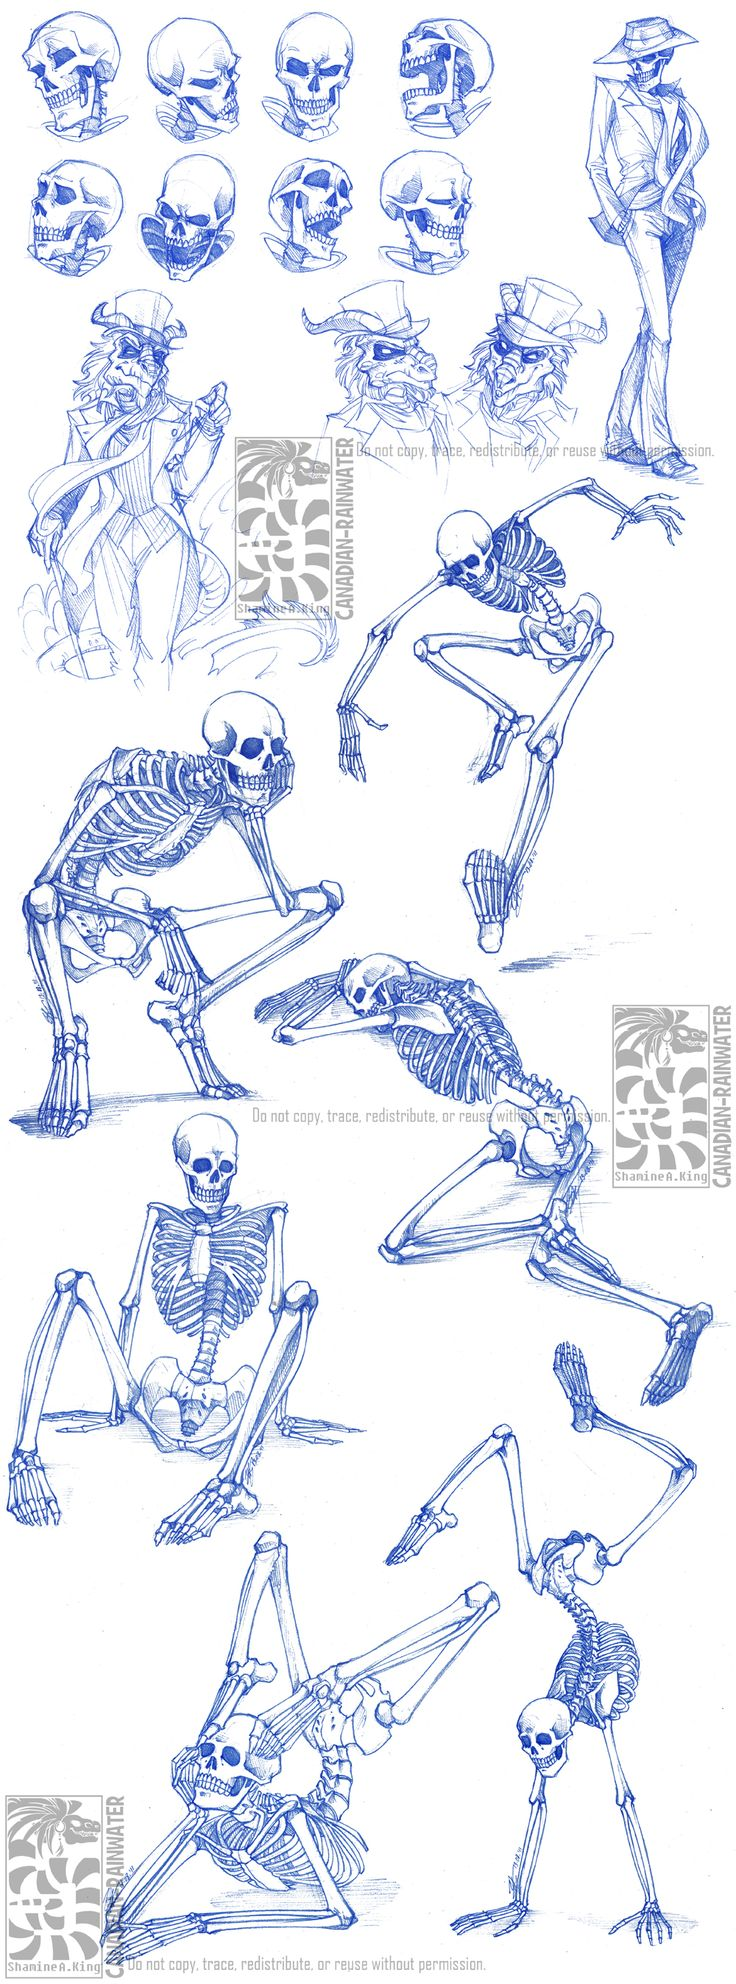 Skeletal Sketchdump by *Canadian-Rainwater on deviantART (looks like how I invisioned the character skullduggery!!!)